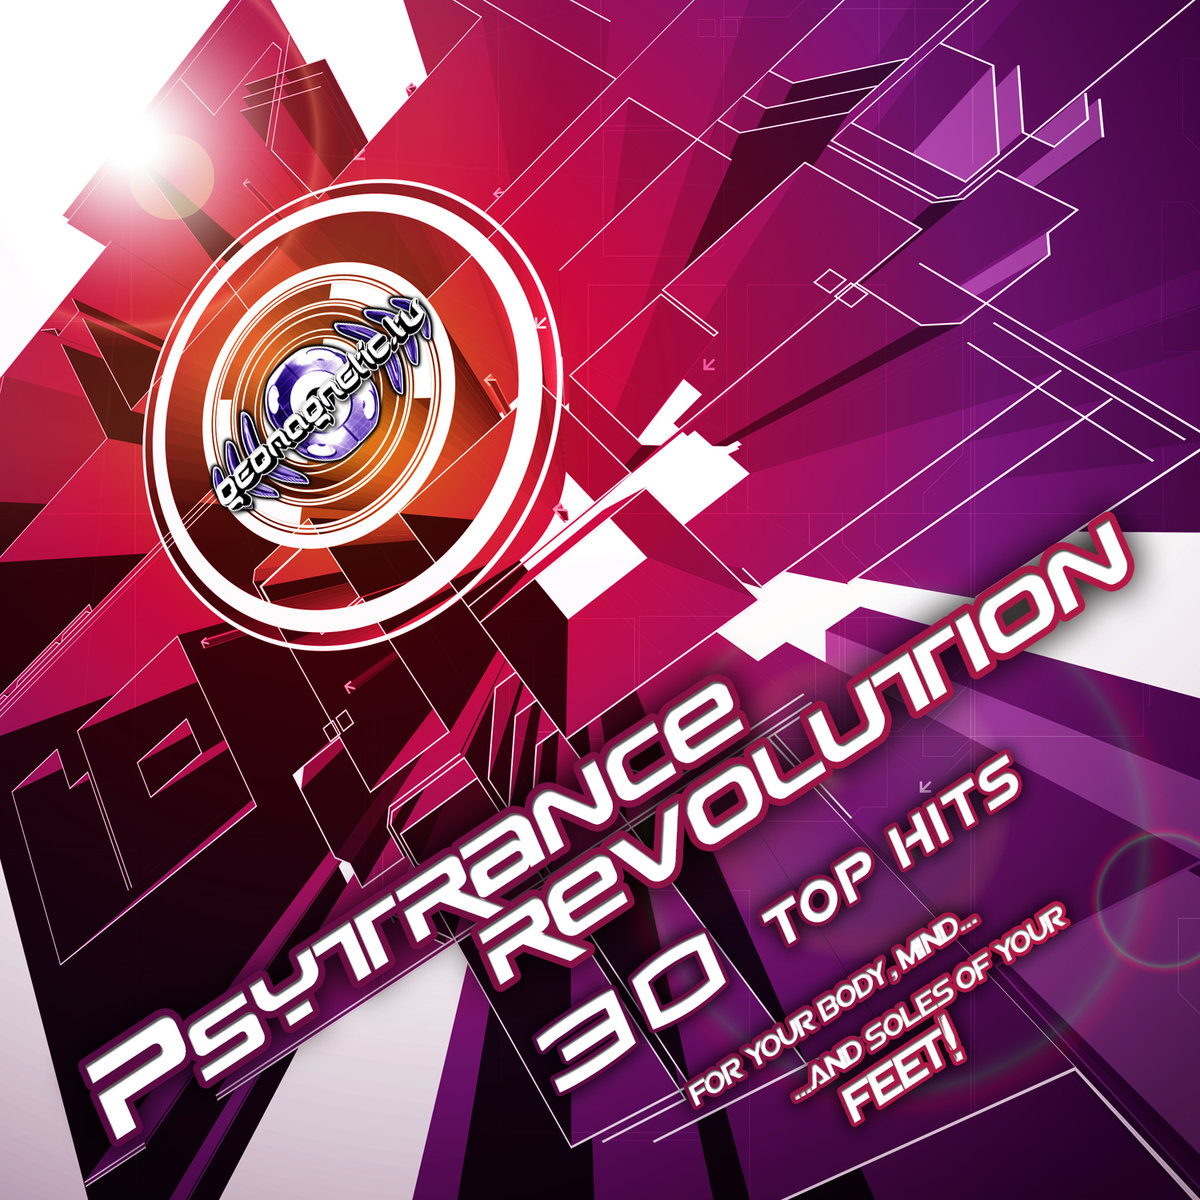 Vaktun - Reality @ 'Various Artists - Psytrance Revolution (30 Top Hits)' album (electronic, goa)